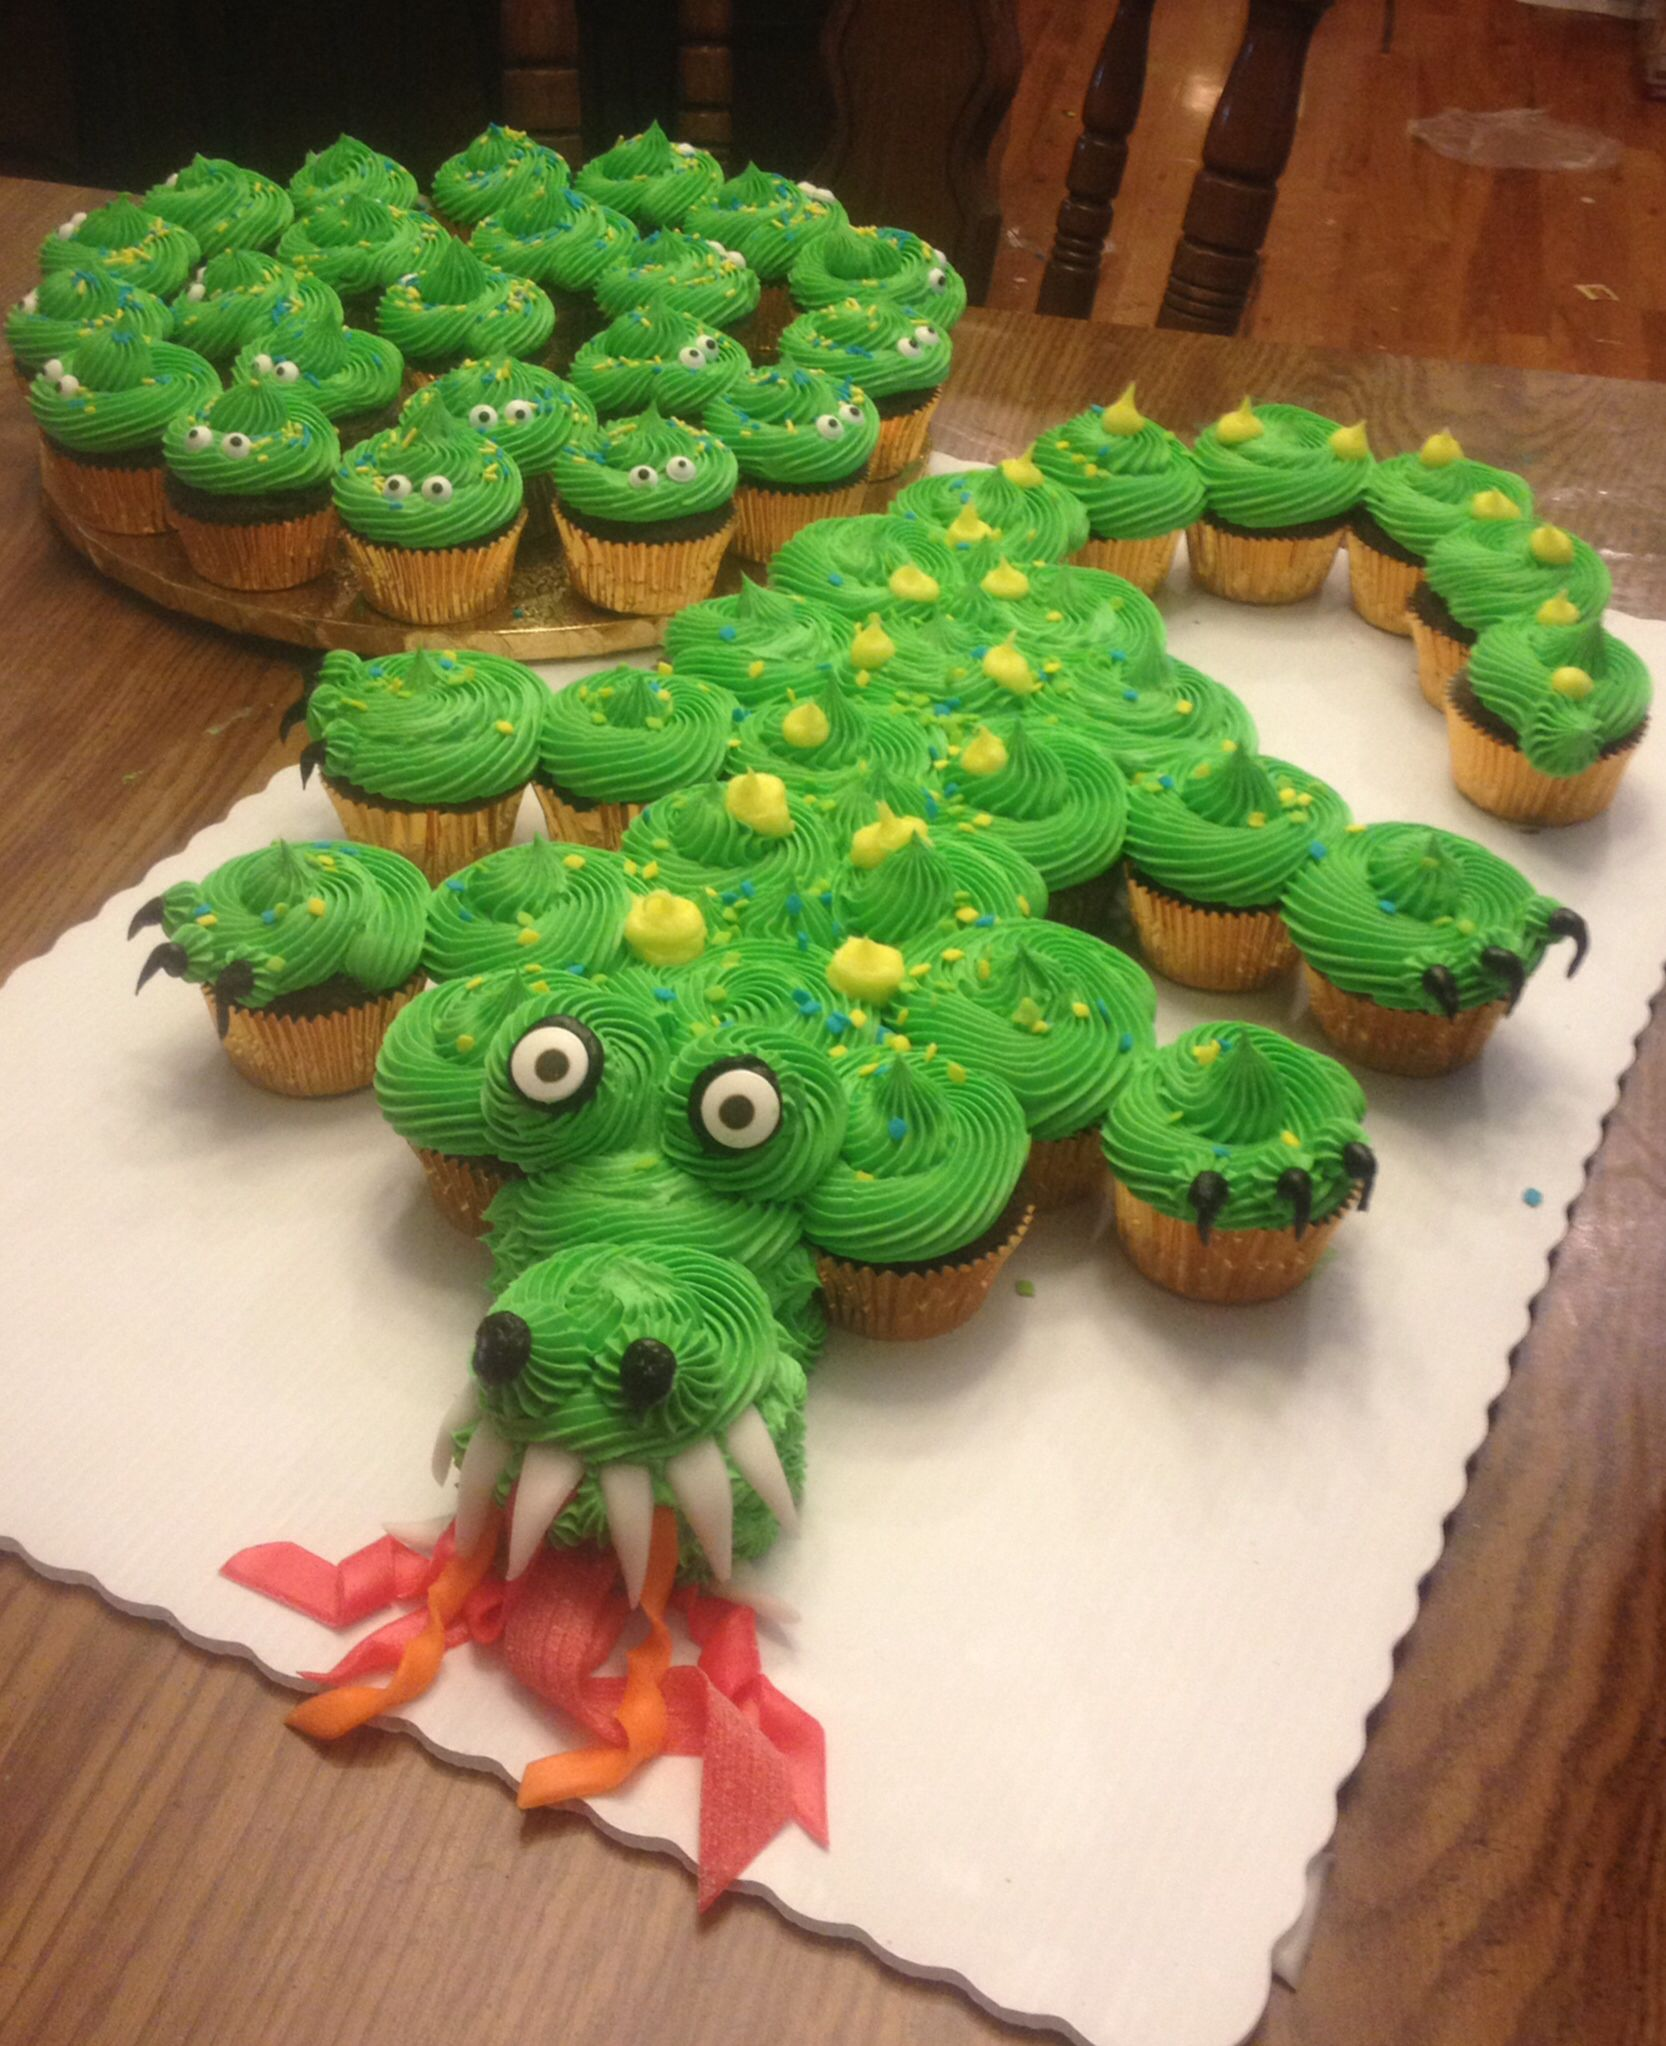 Green Dragon Cake by Shelly